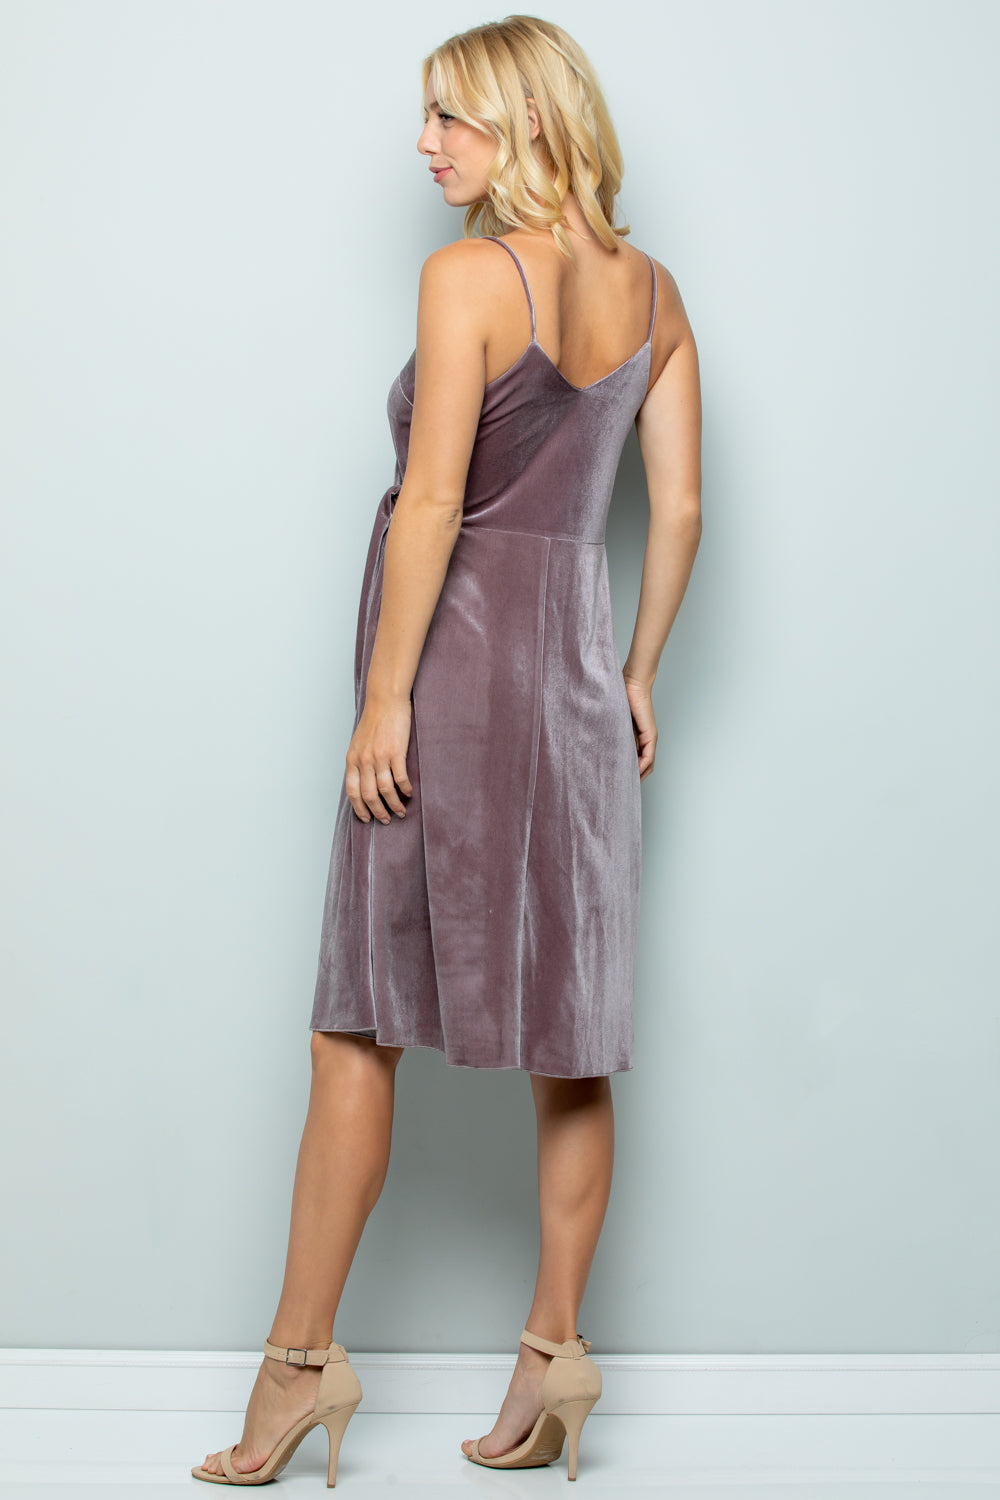 D5281 Strap Velvet Dress - PURPLE